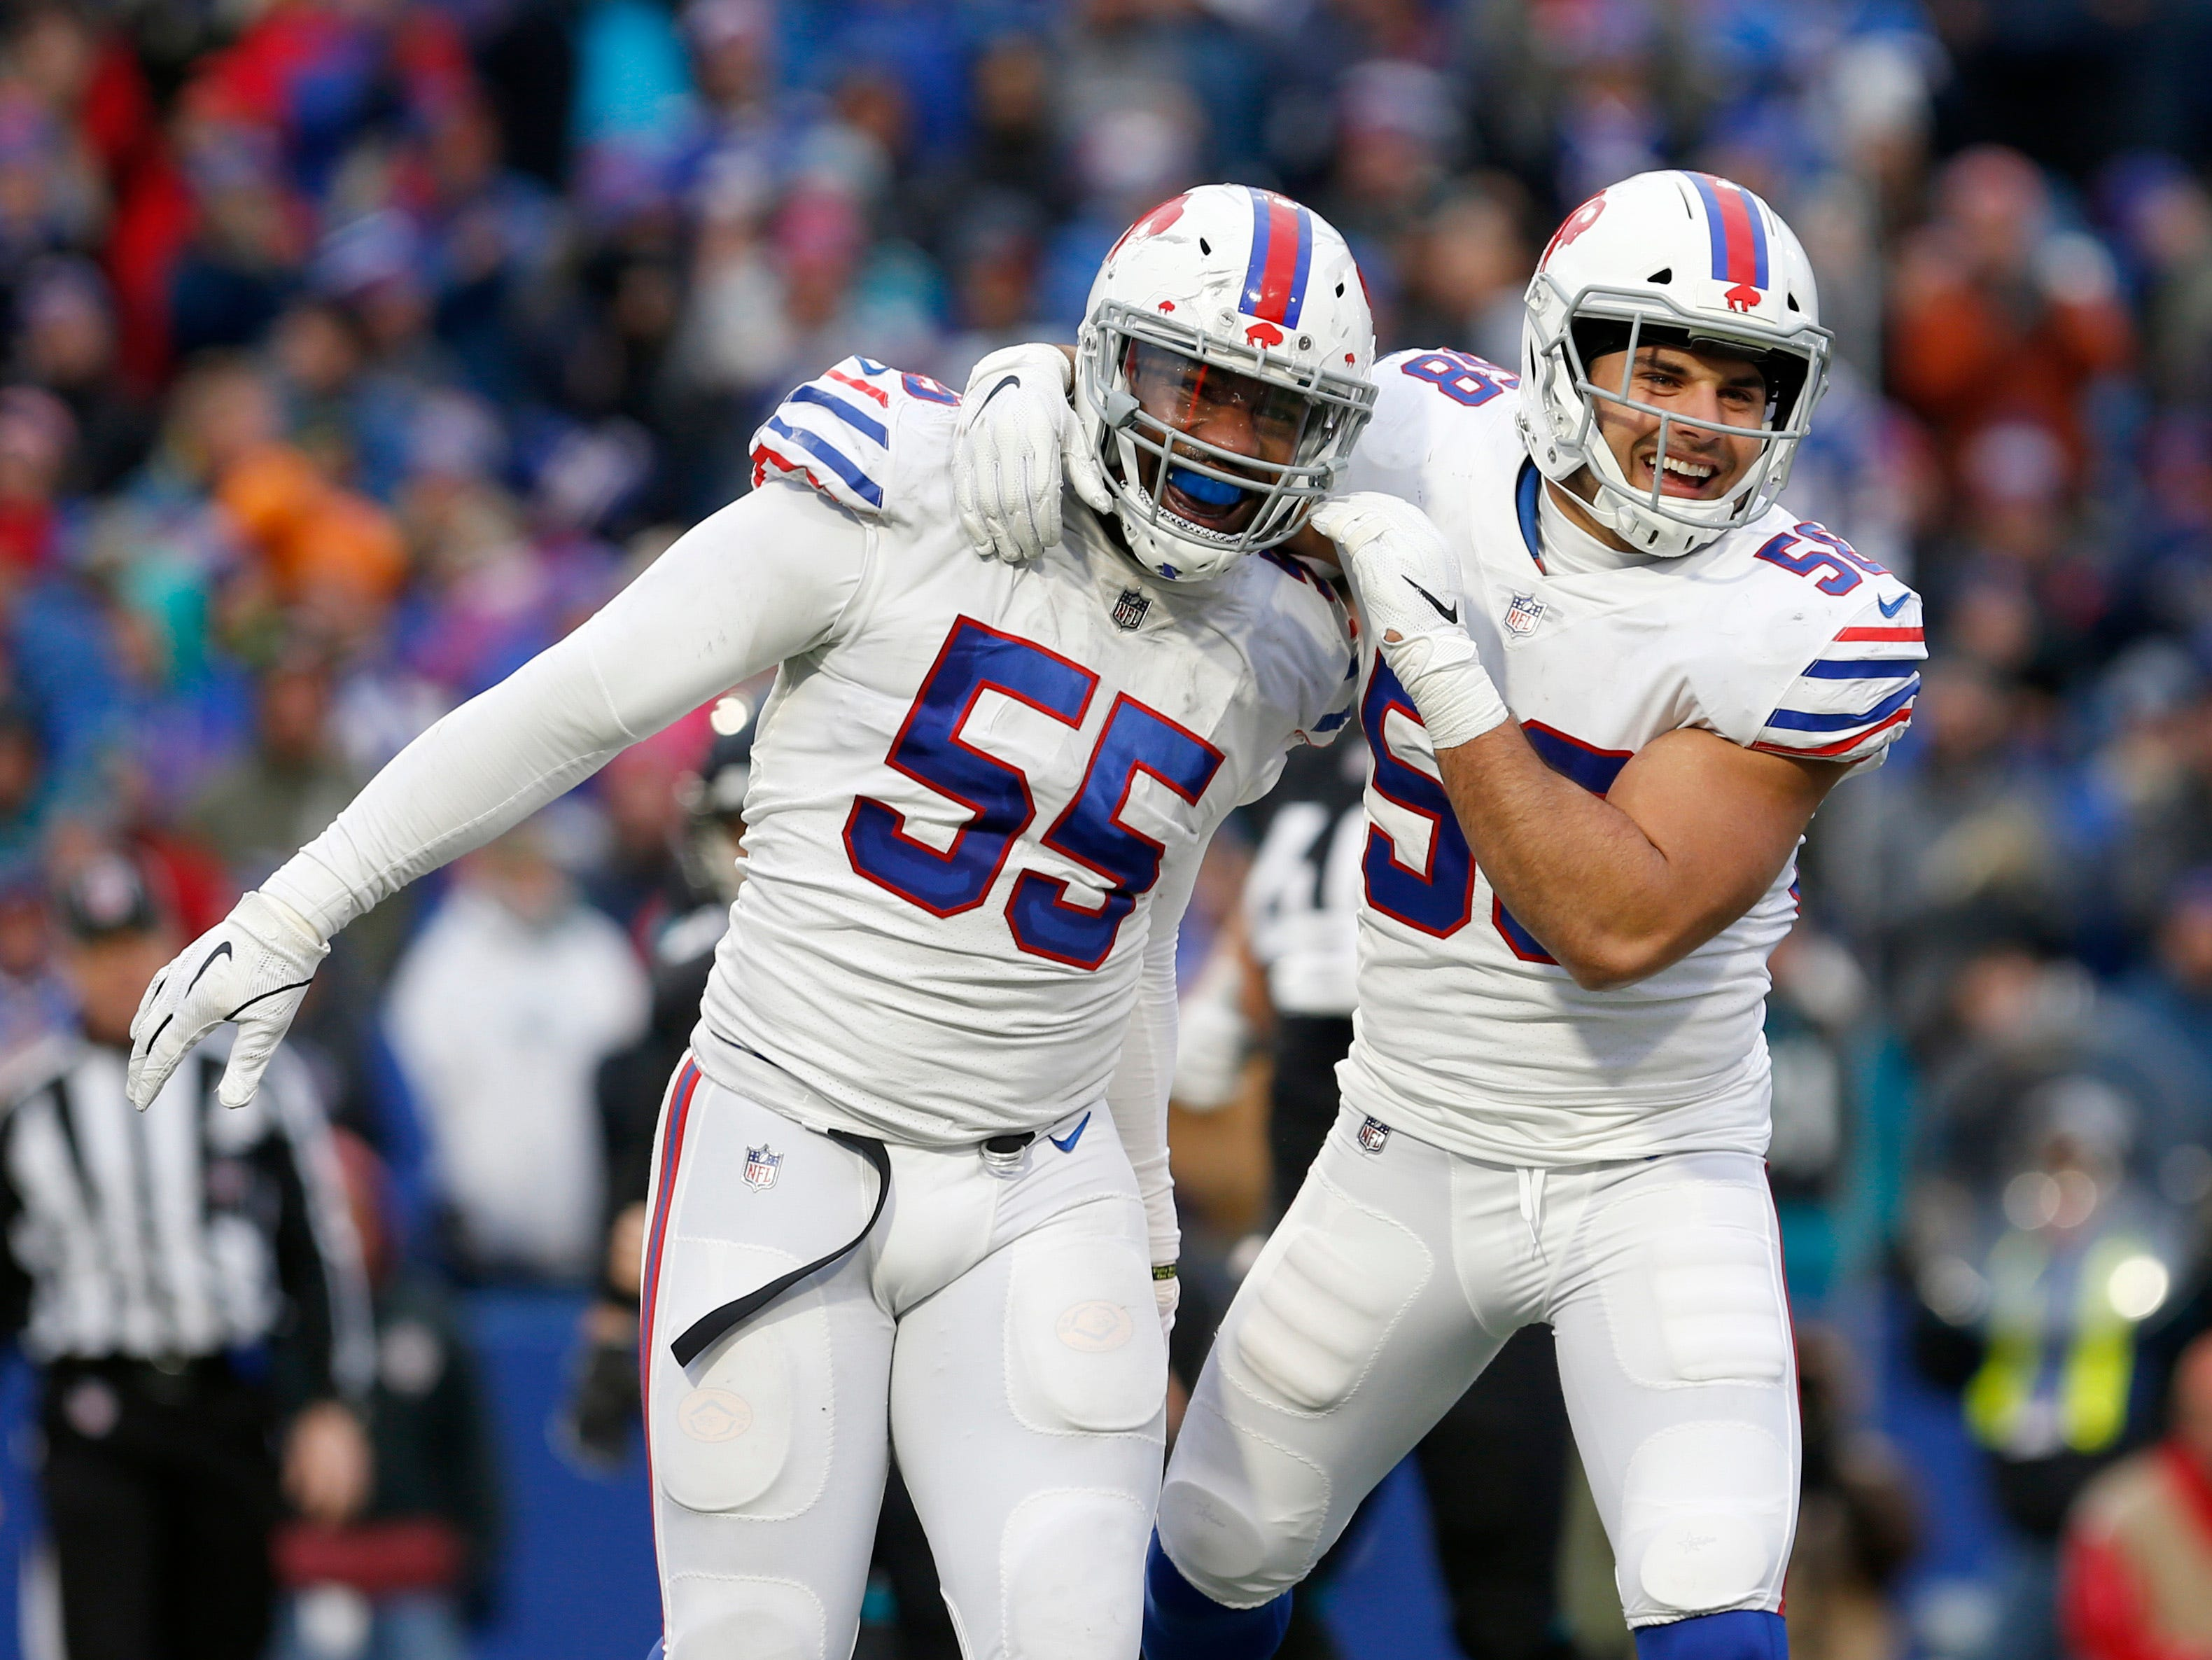 'He called me a b----': Bills' Jerry Hughes confronts NFL official after game